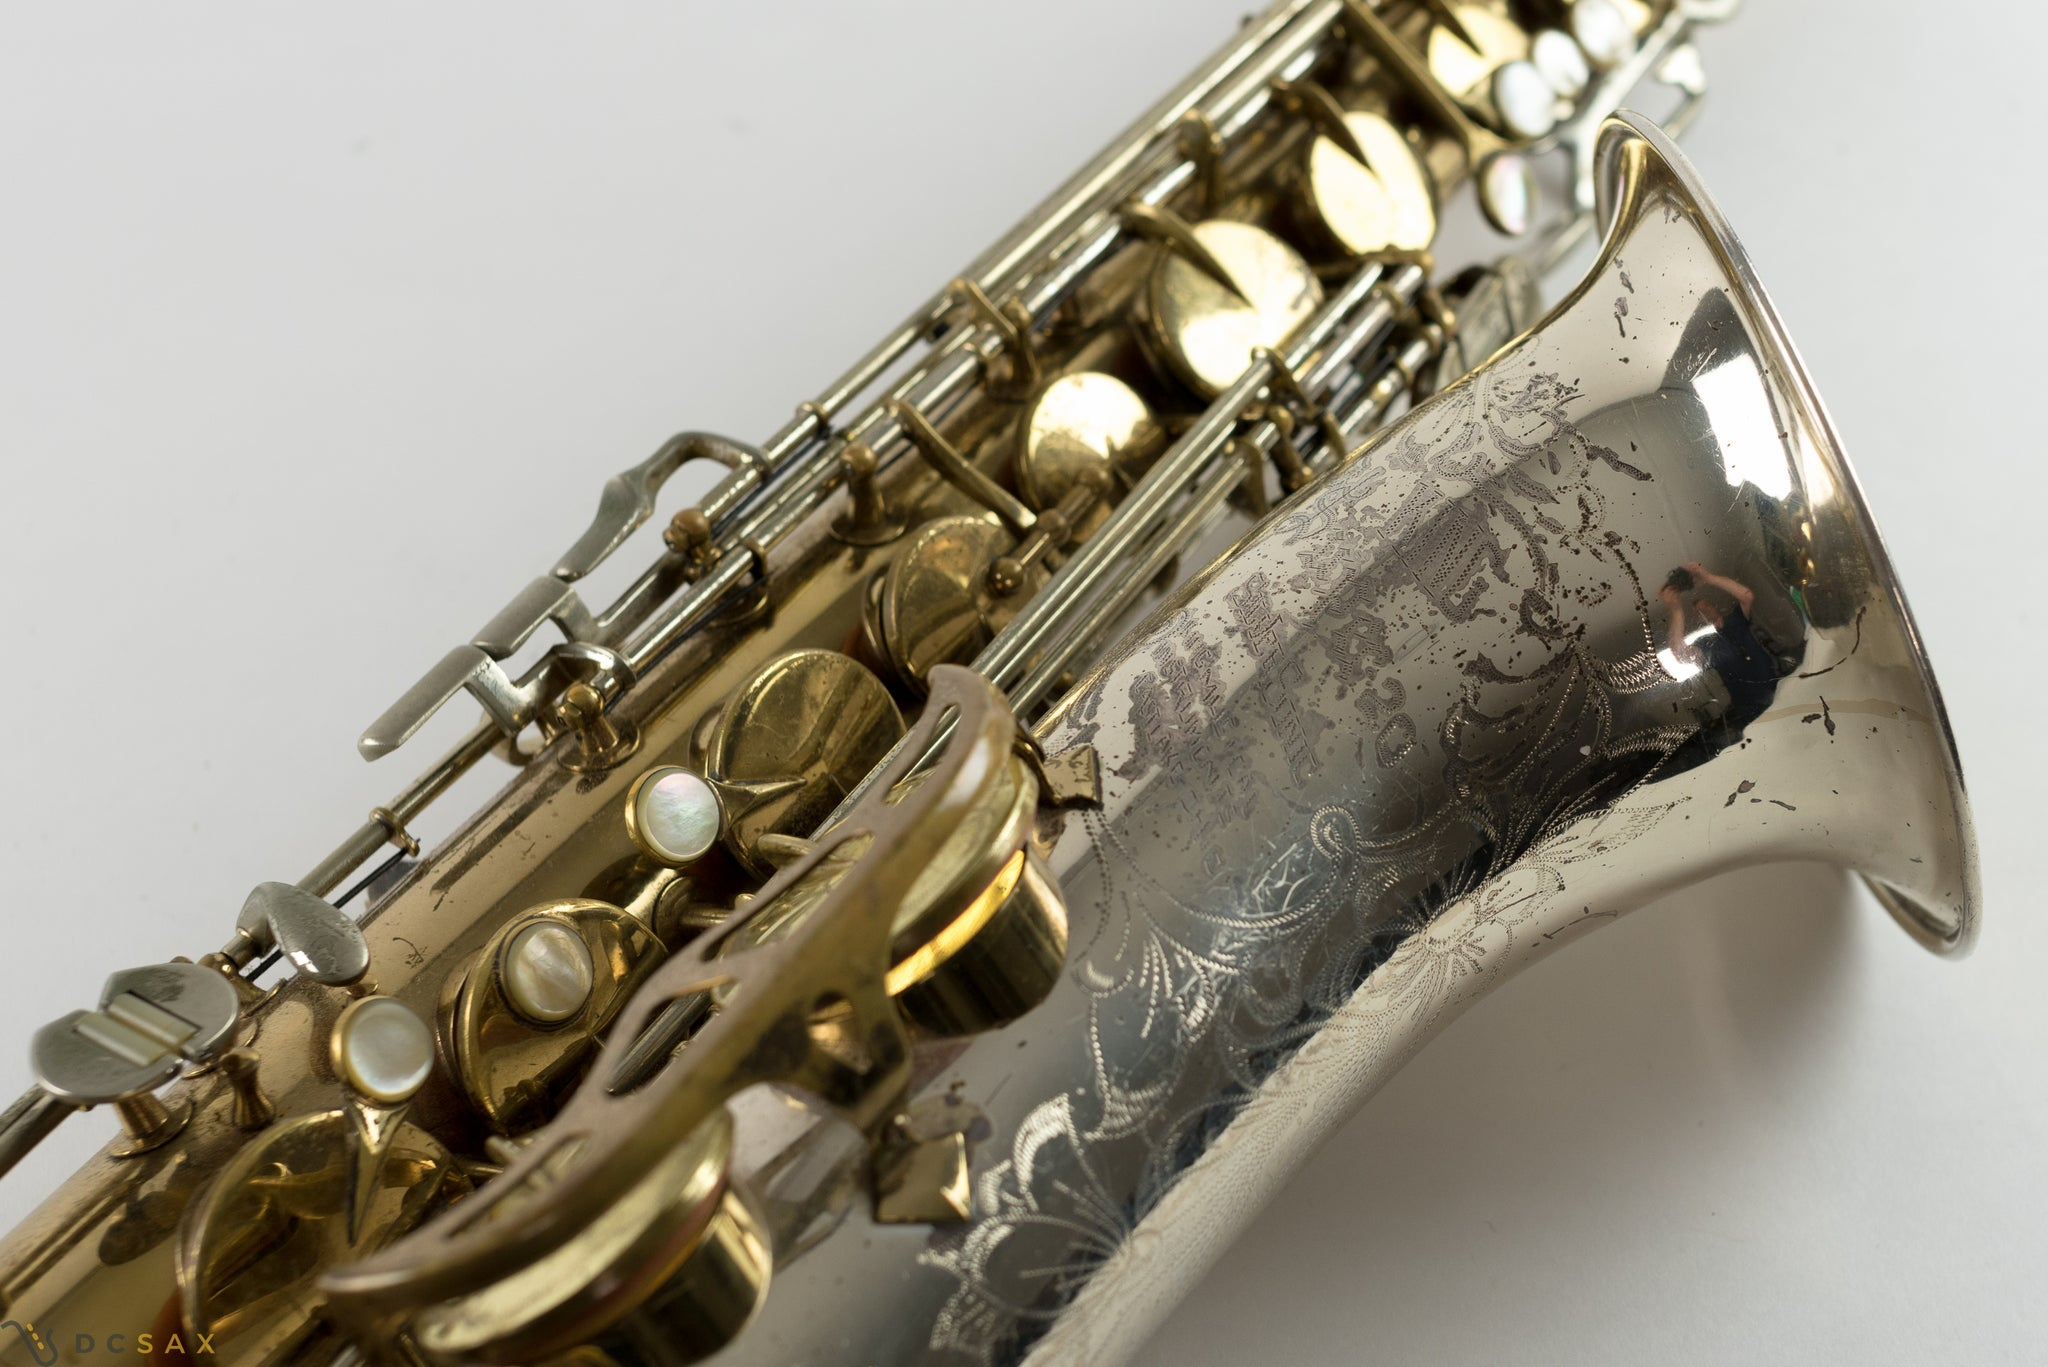 King Super 20 Tenor Saxophone, Silver Sonic